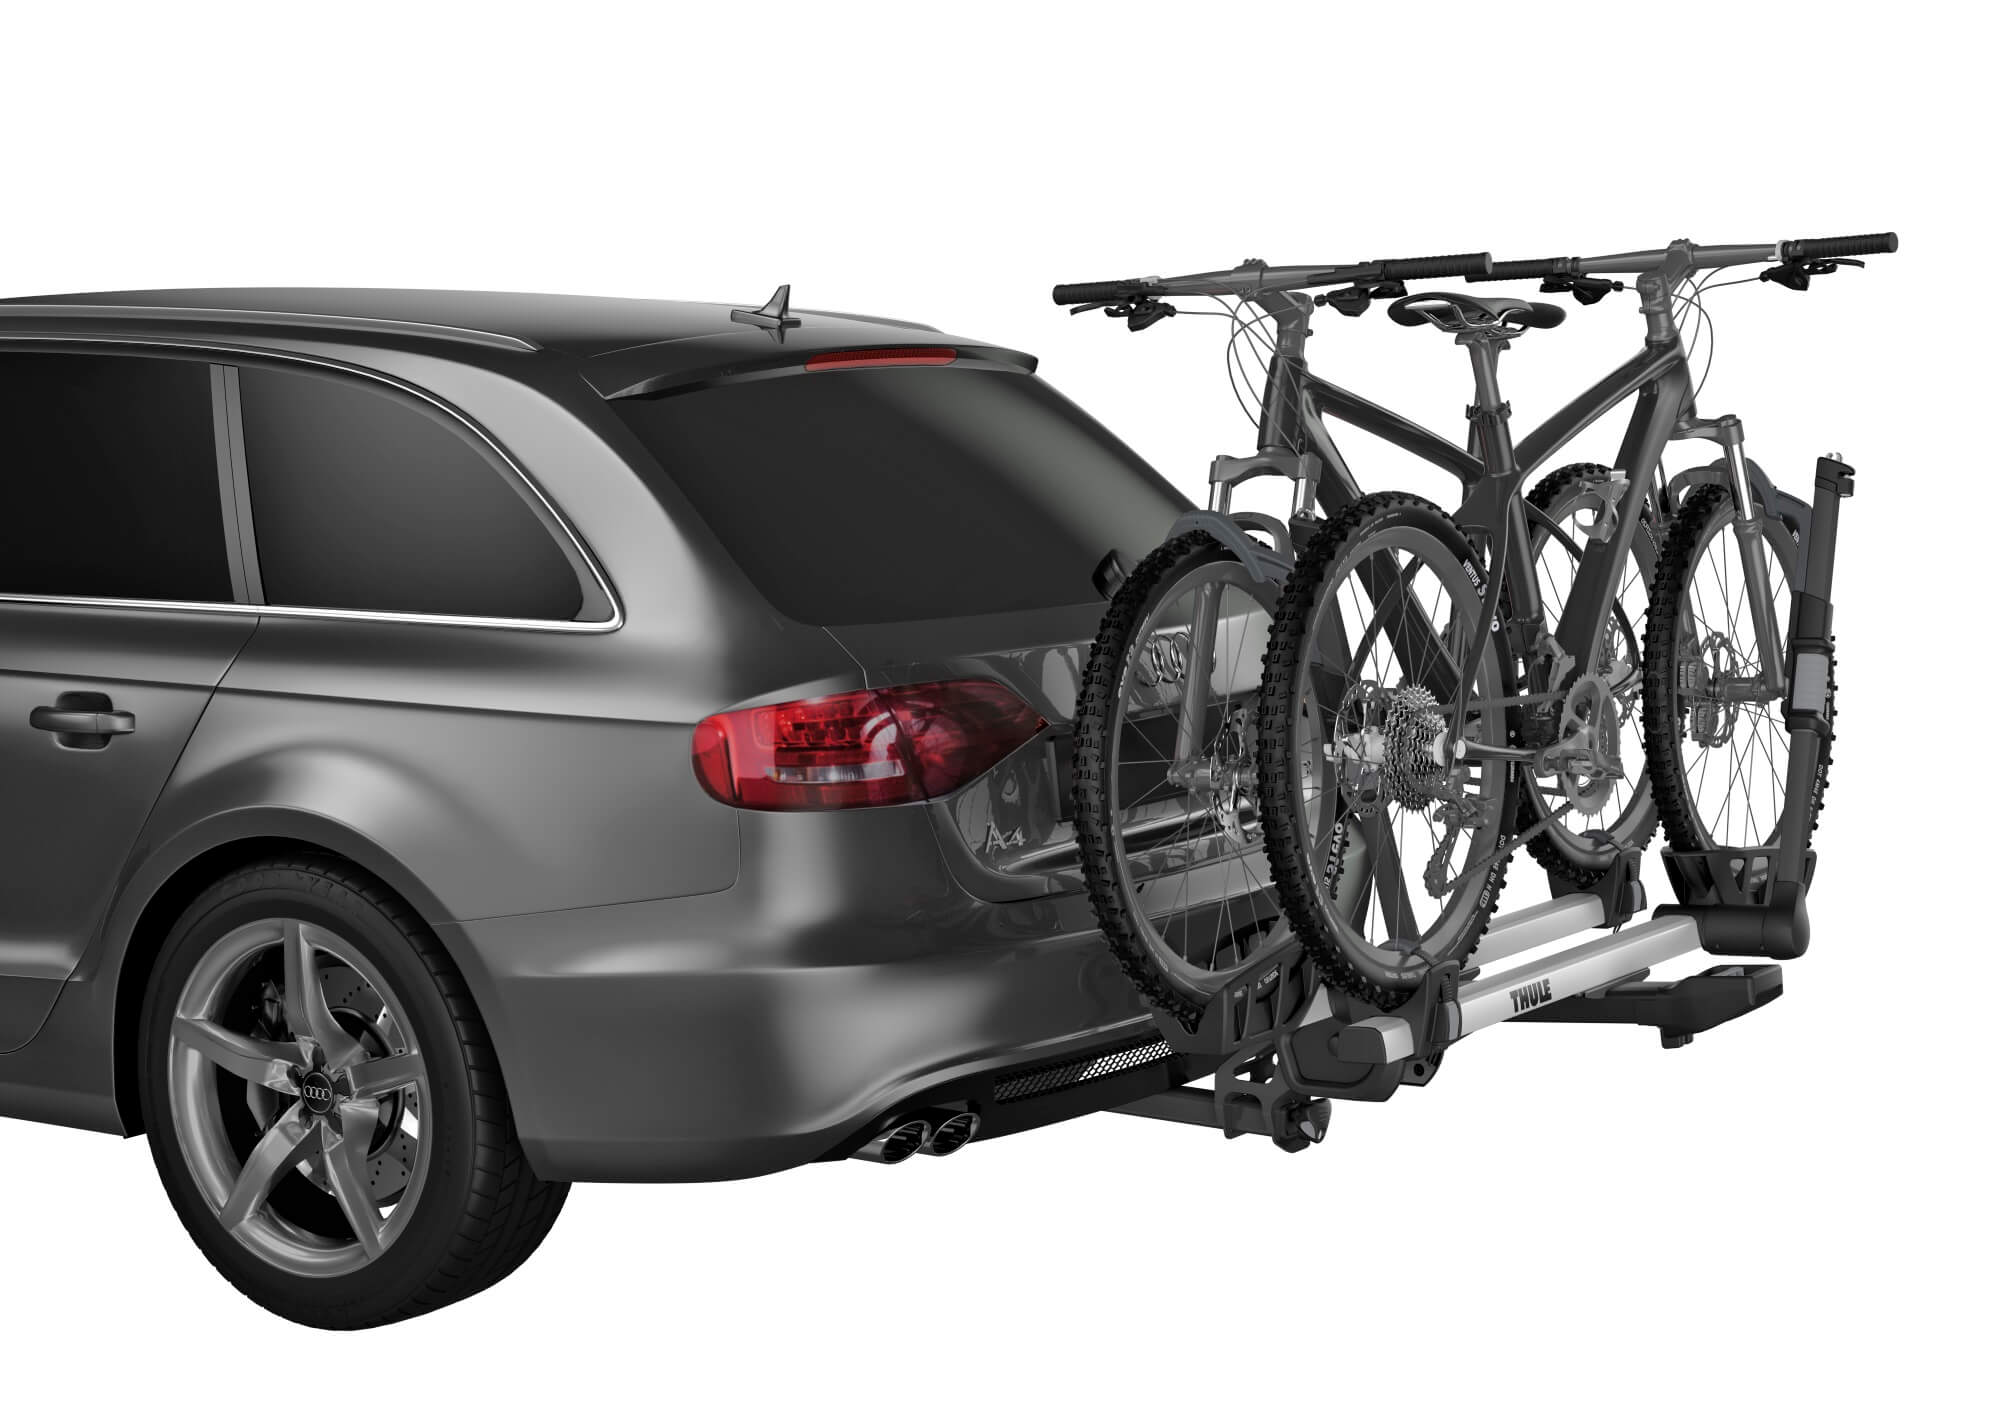 Calgary Car Racks Bike Racks Roof Boxes Truck Rack